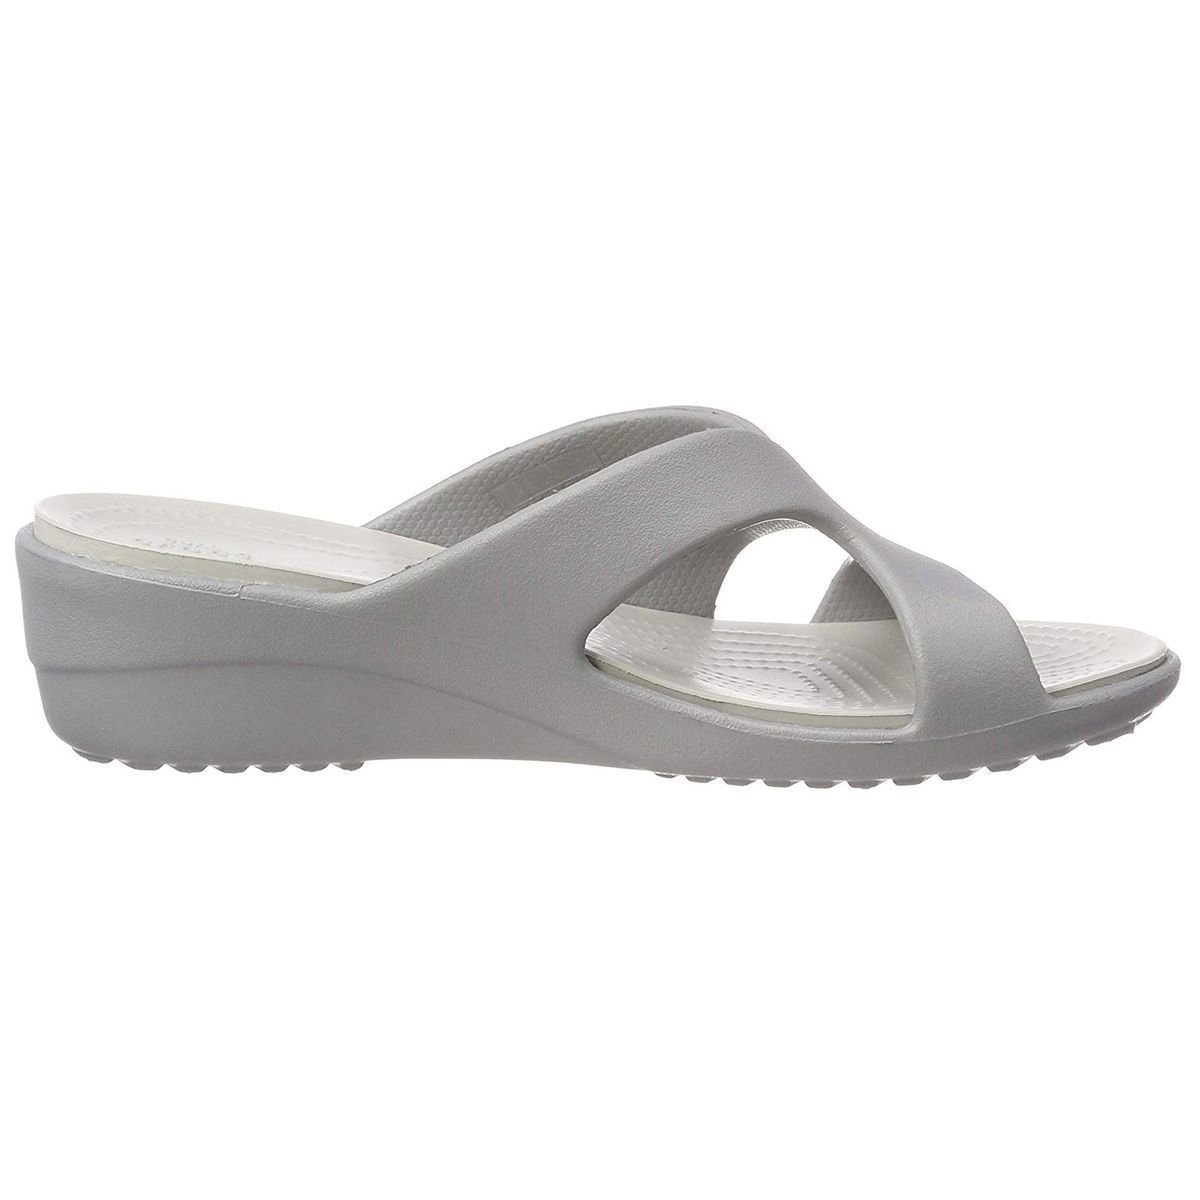 CESSILY CONVERTIBLE XBODY SANRAH STRAPPY WEDGE:SILVER/CAOUTCHOUC/CAOUTCHOUC/CAOUTCHOUC/Silver